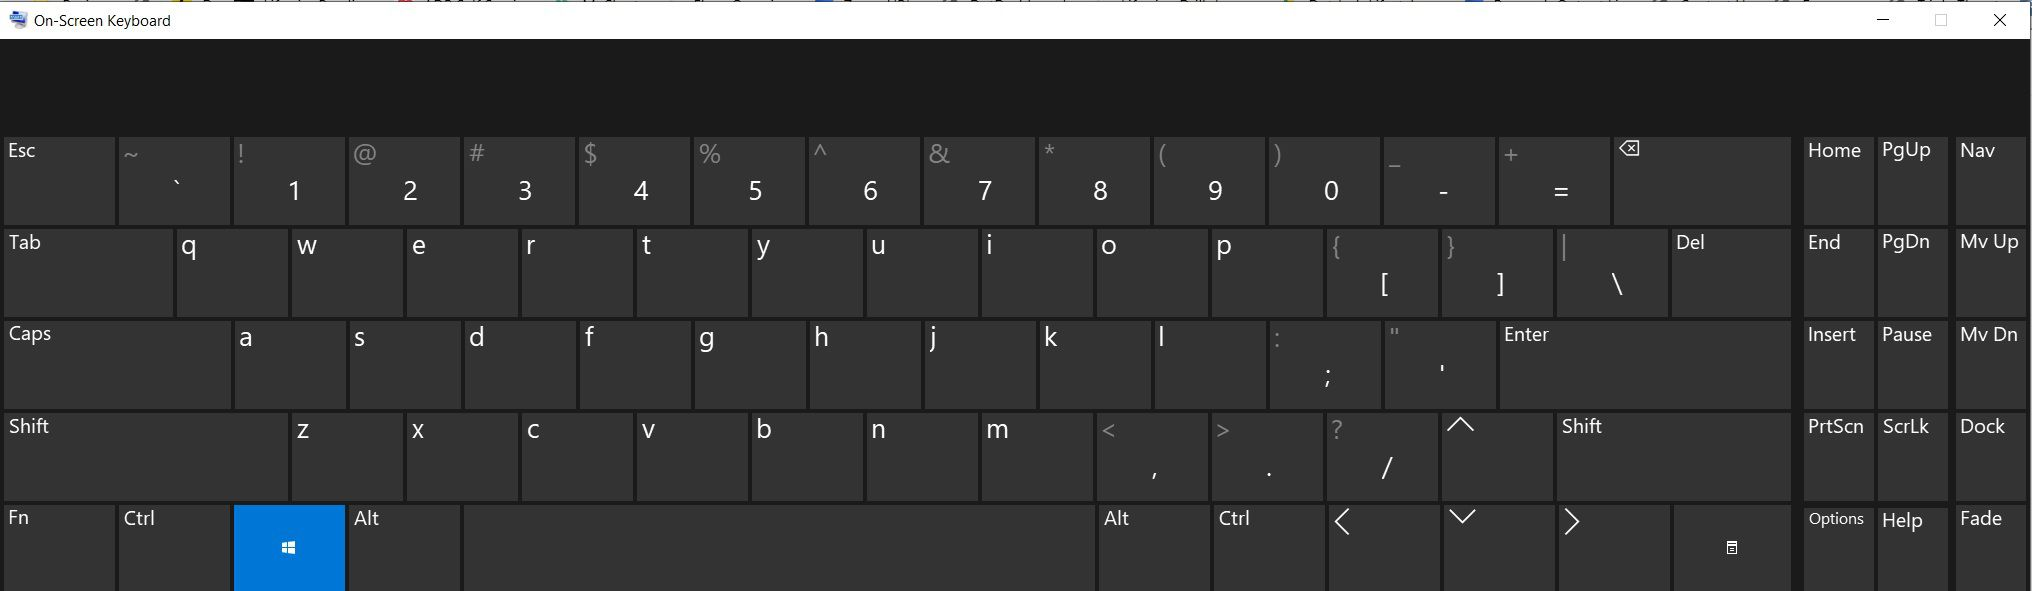 The on-screen keyboard available with Windows 10.